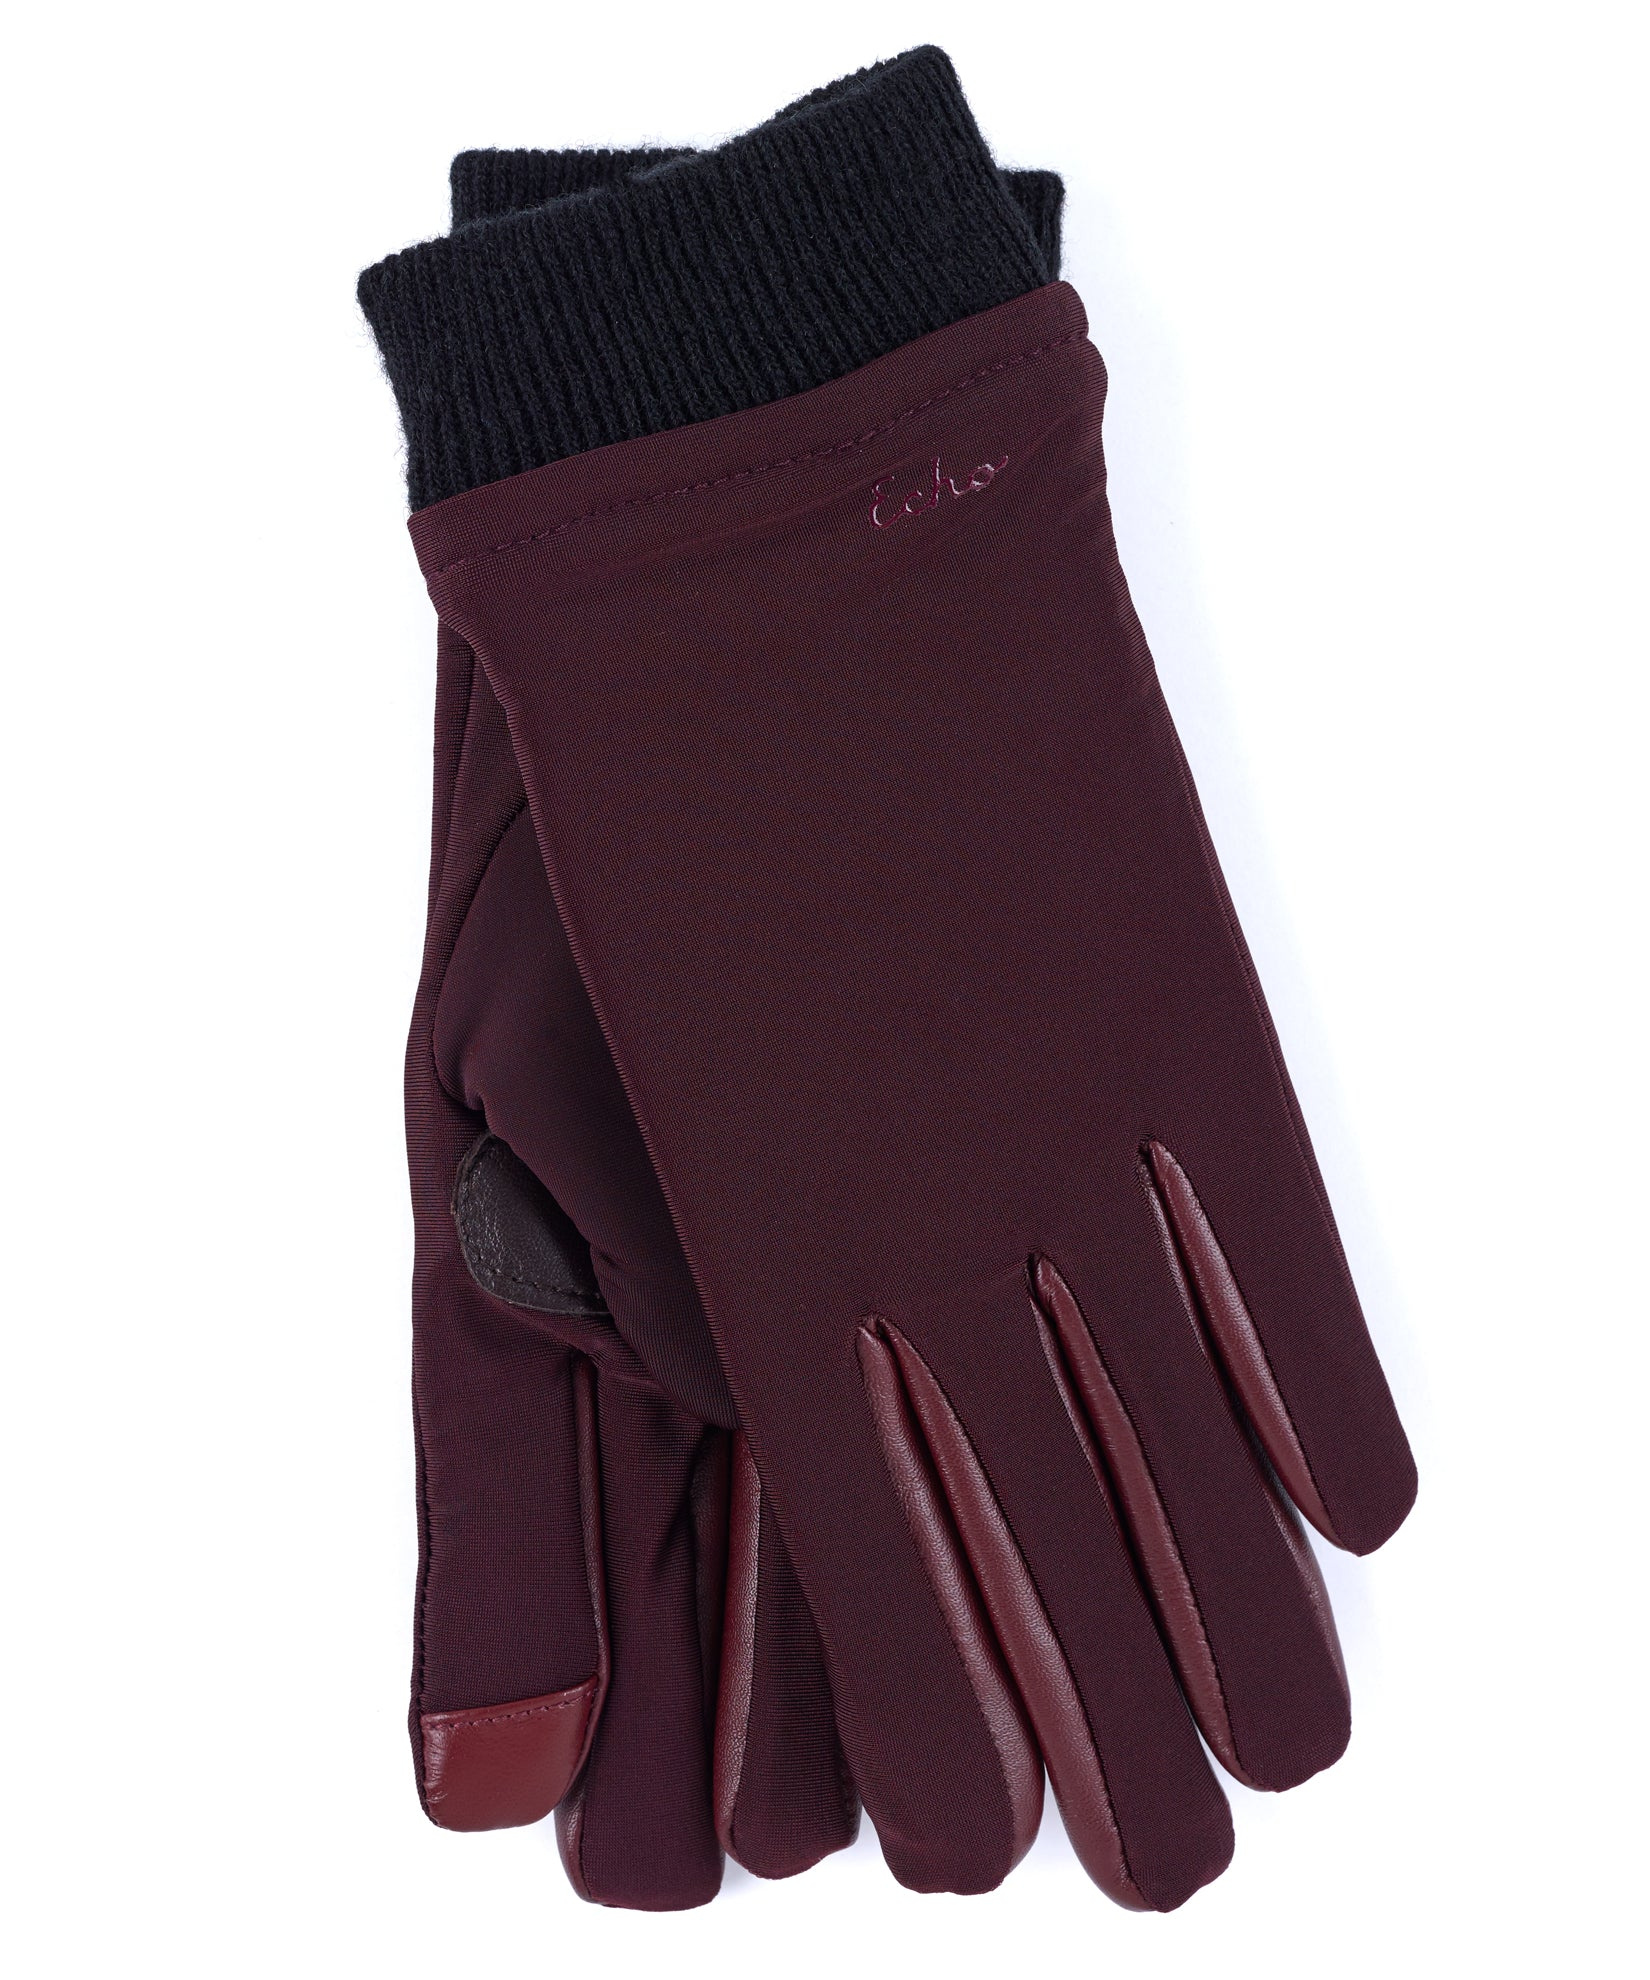 Garnet - Active Superfit Glove